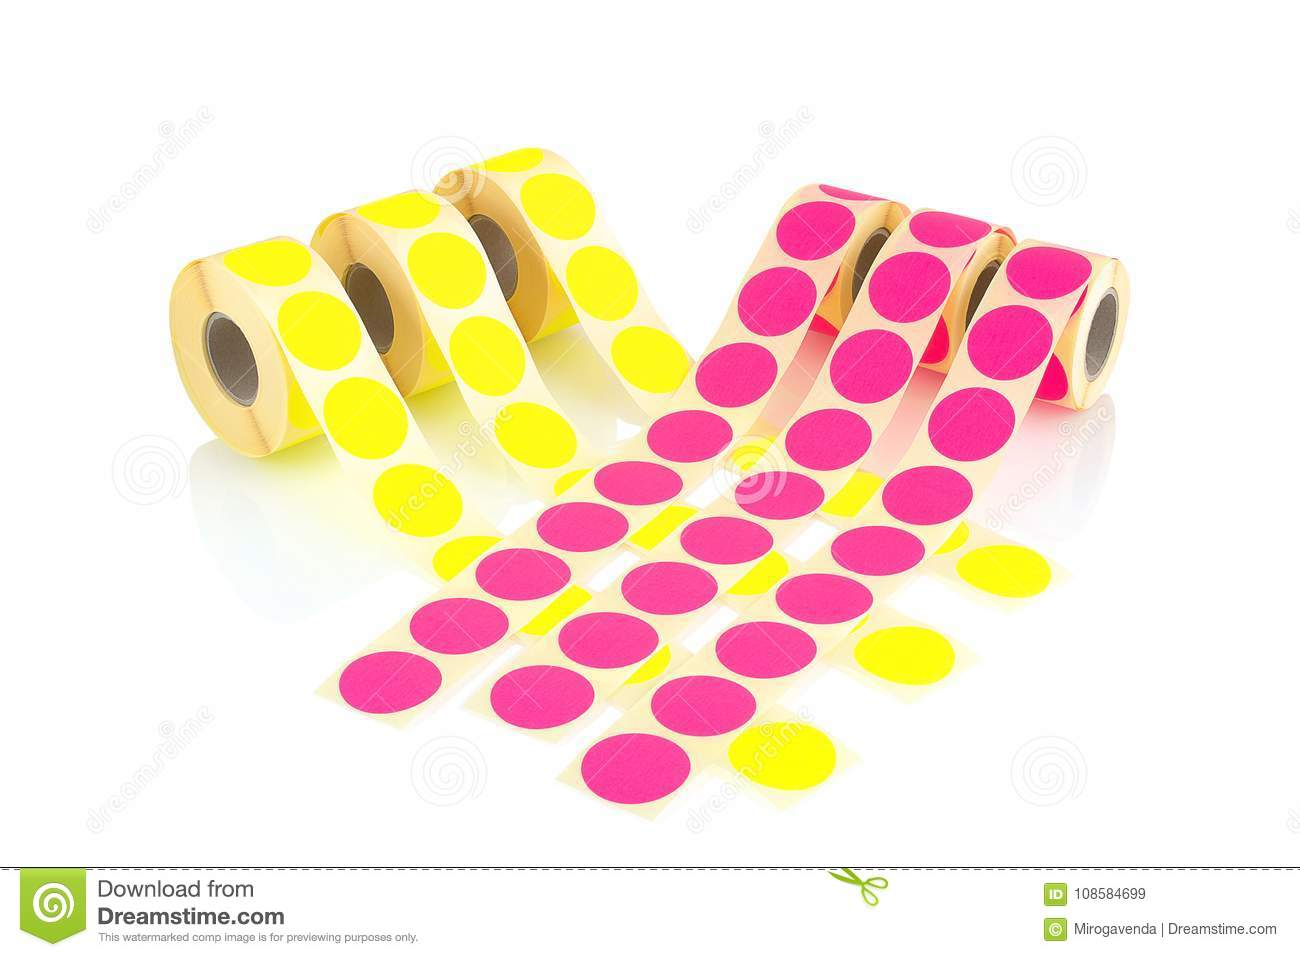 Colored label rolls isolated on white background with shadow reflection. Color reels of labels for printers. Labels for direct the